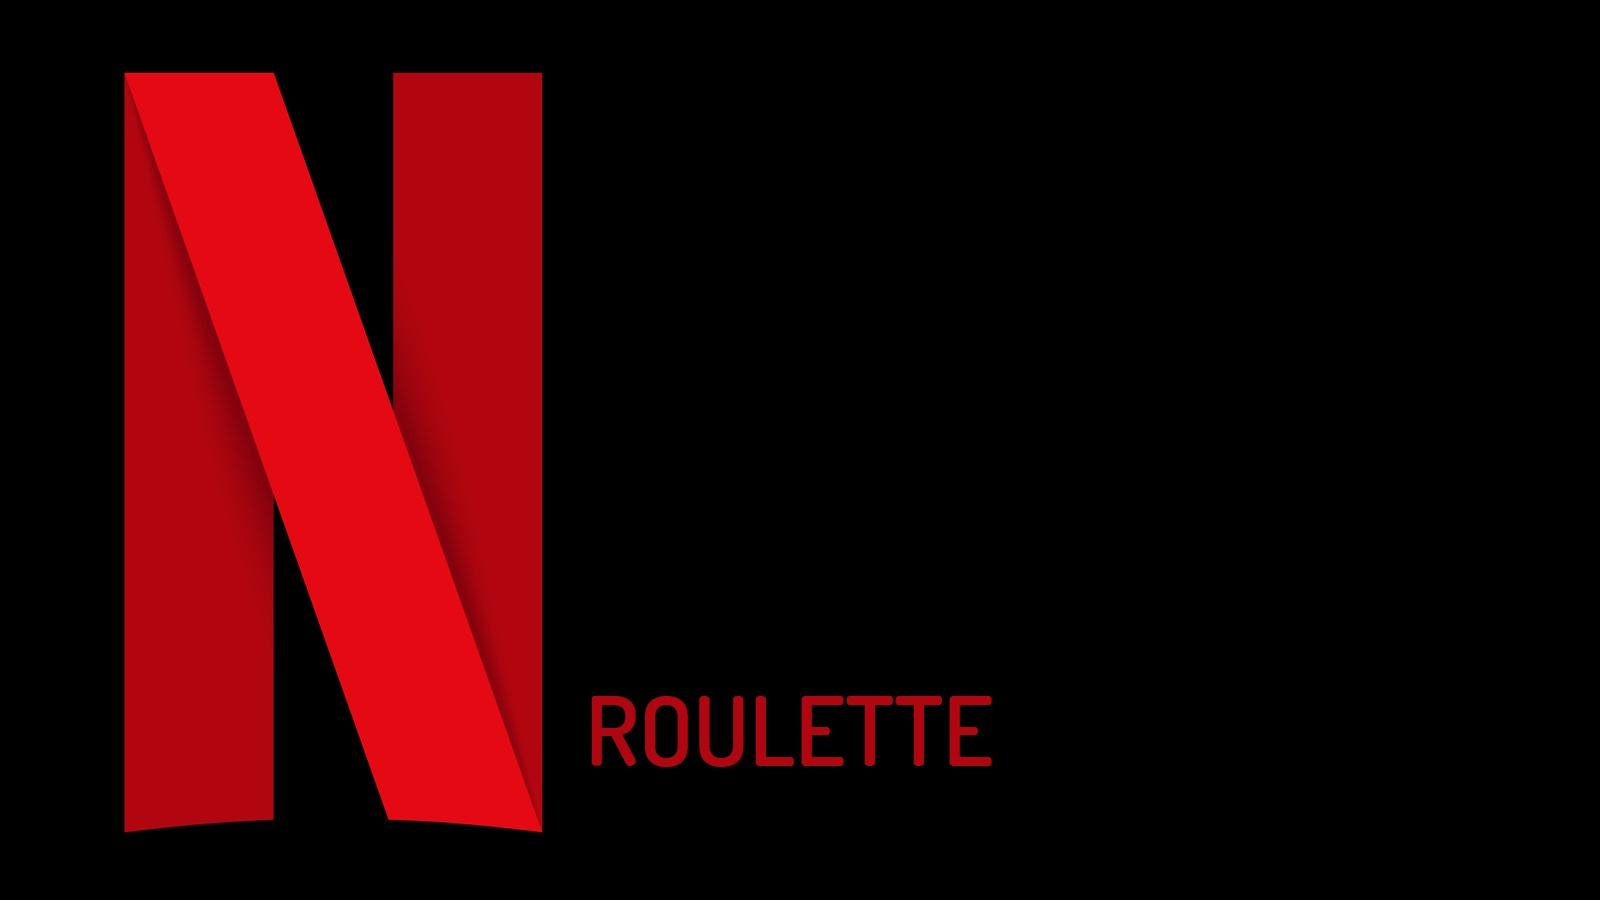 Don't know what to watch on Netflix or Amazon Prime? Try Netflix Roulette